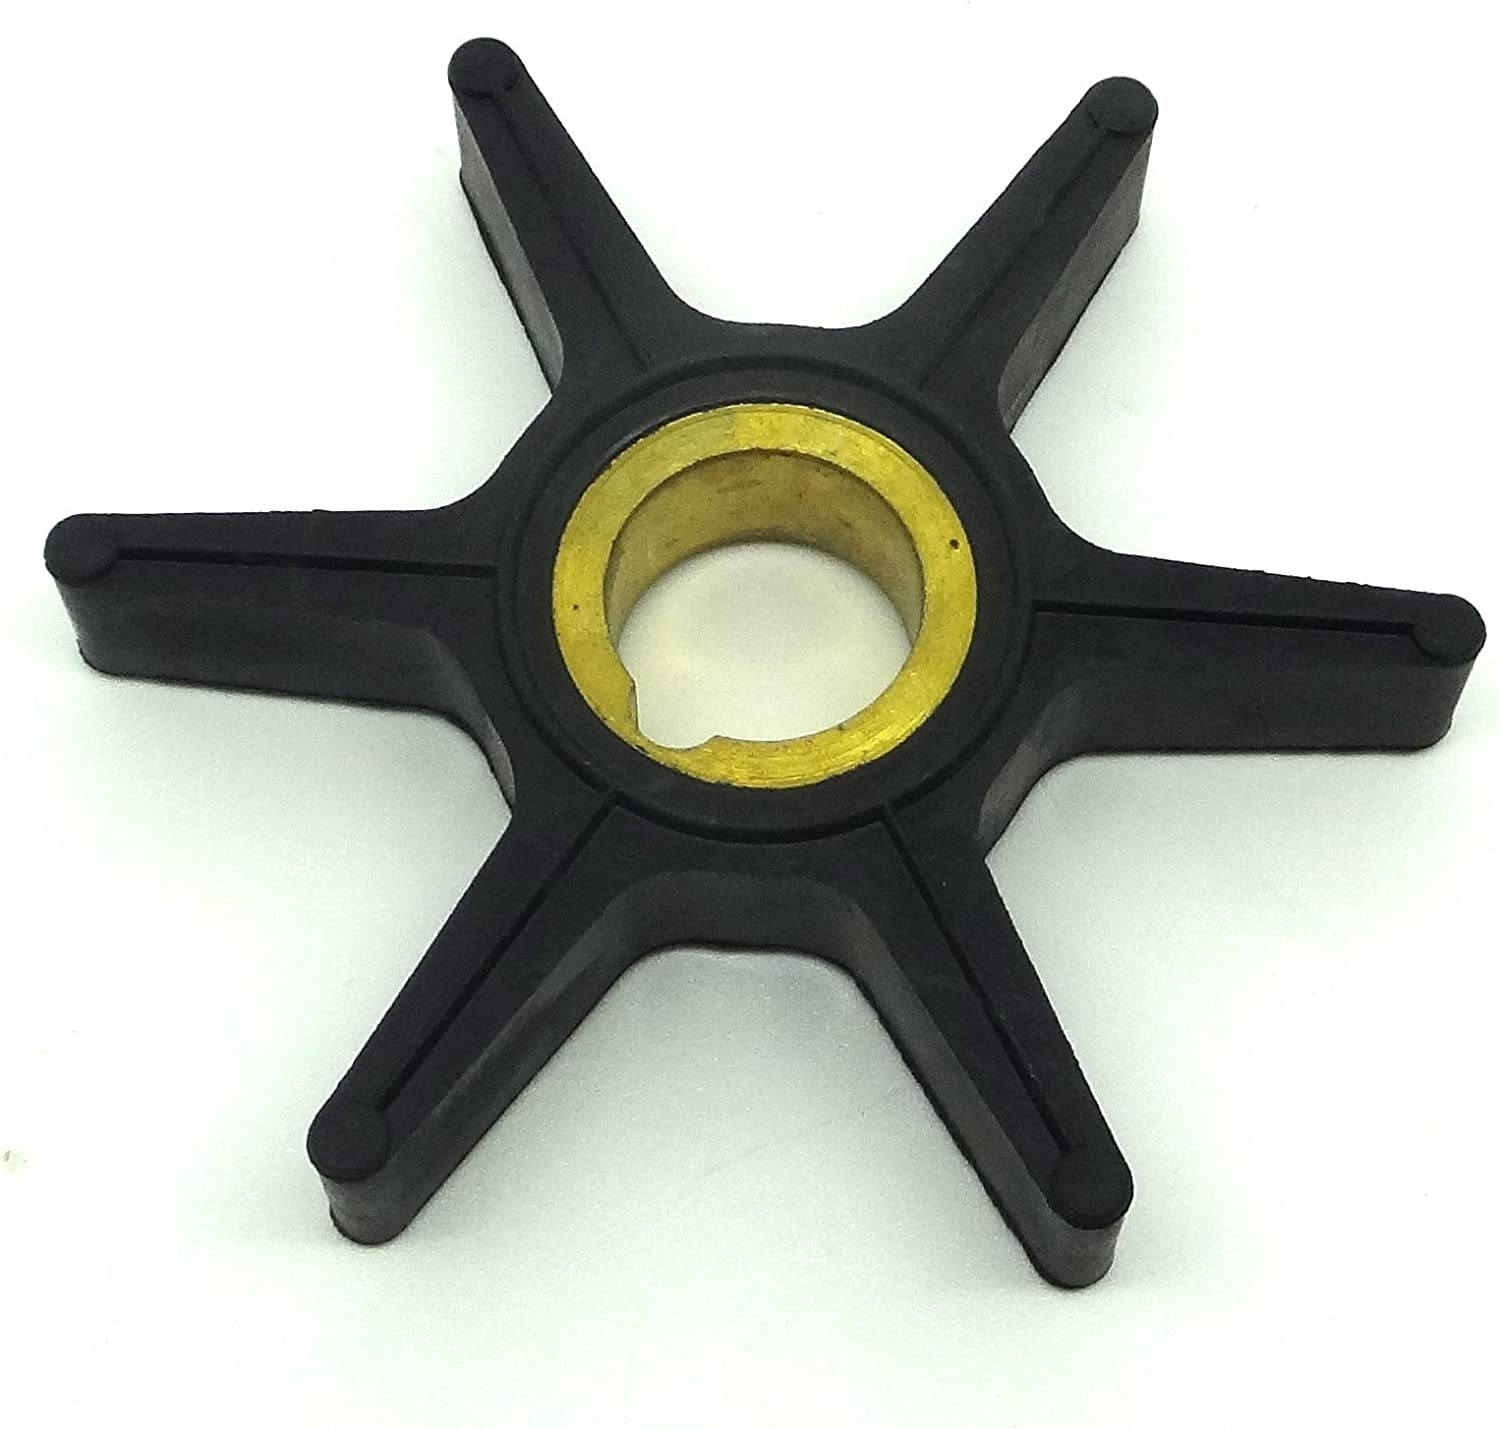 ConPus Boat Motor Water Pump Impeller 47-85089-3 47-85089-10 18-3057 for Mercury Mariner Chrysler Force 18HP 20HP 25HP 30HP 40HP 45HP 50HP 75HP outboard motors